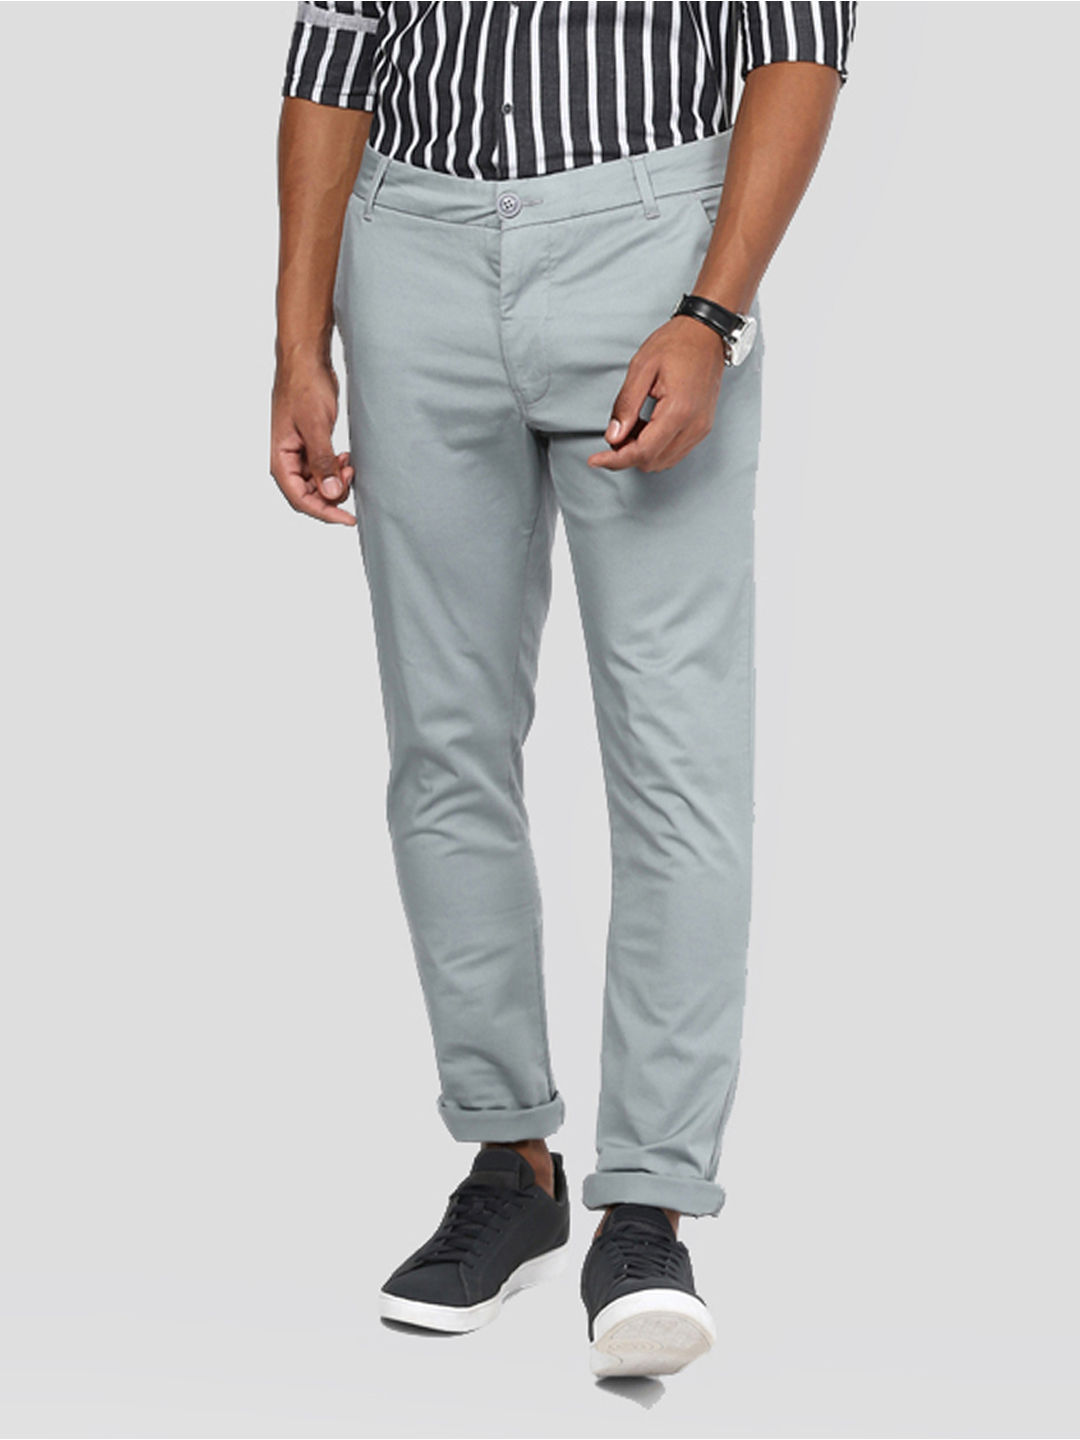 GREY SOLID STRAIGHT CHINOS